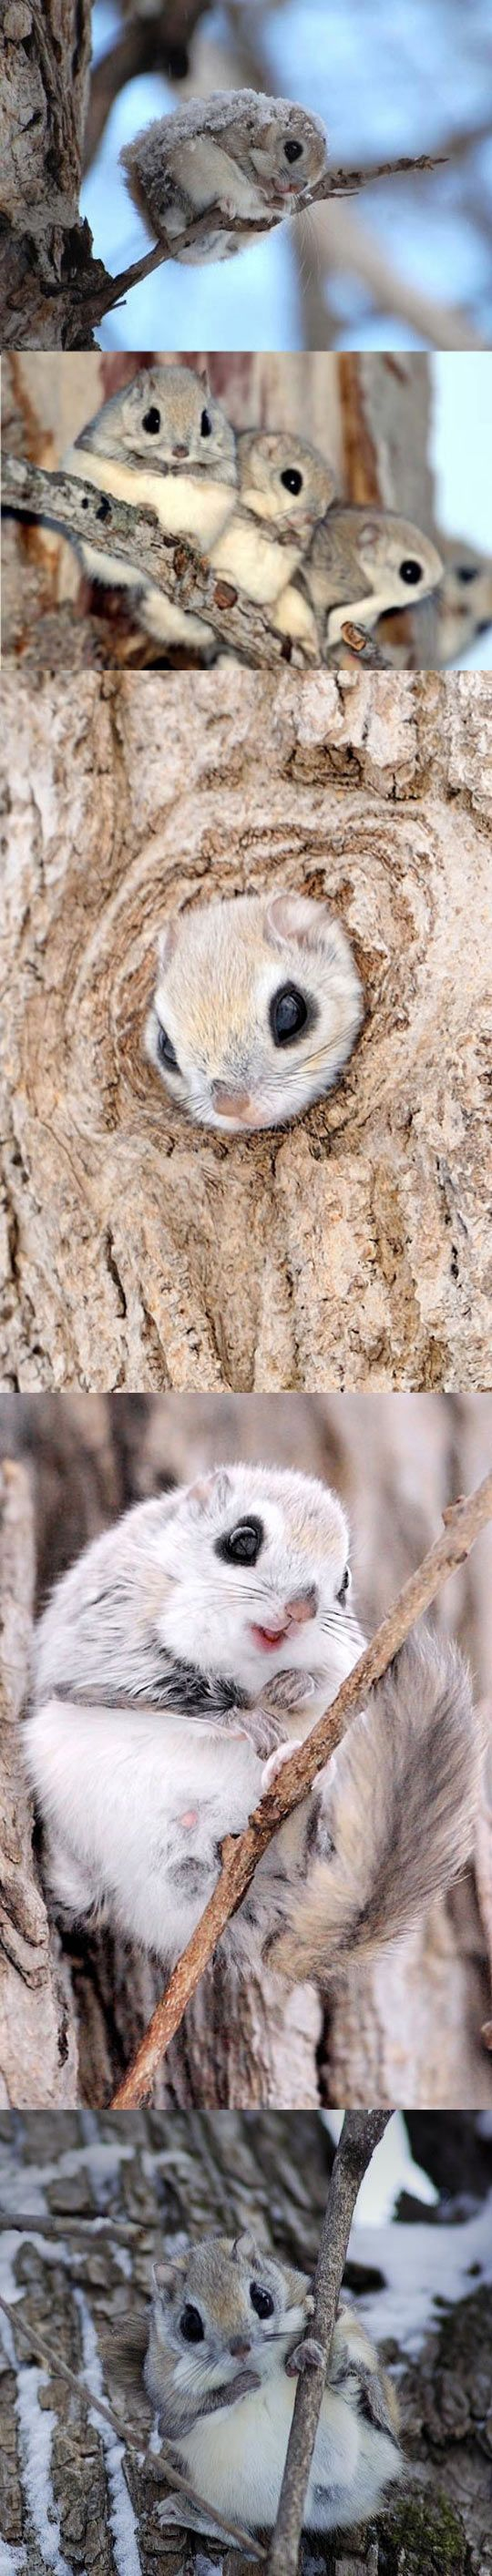 cute-Japanese-dwarf-flying-squirrels-OMG -- how have I not been told of these deliciously wonderful creatures before now?!? I mean, look at them. LOOK AT THEM!